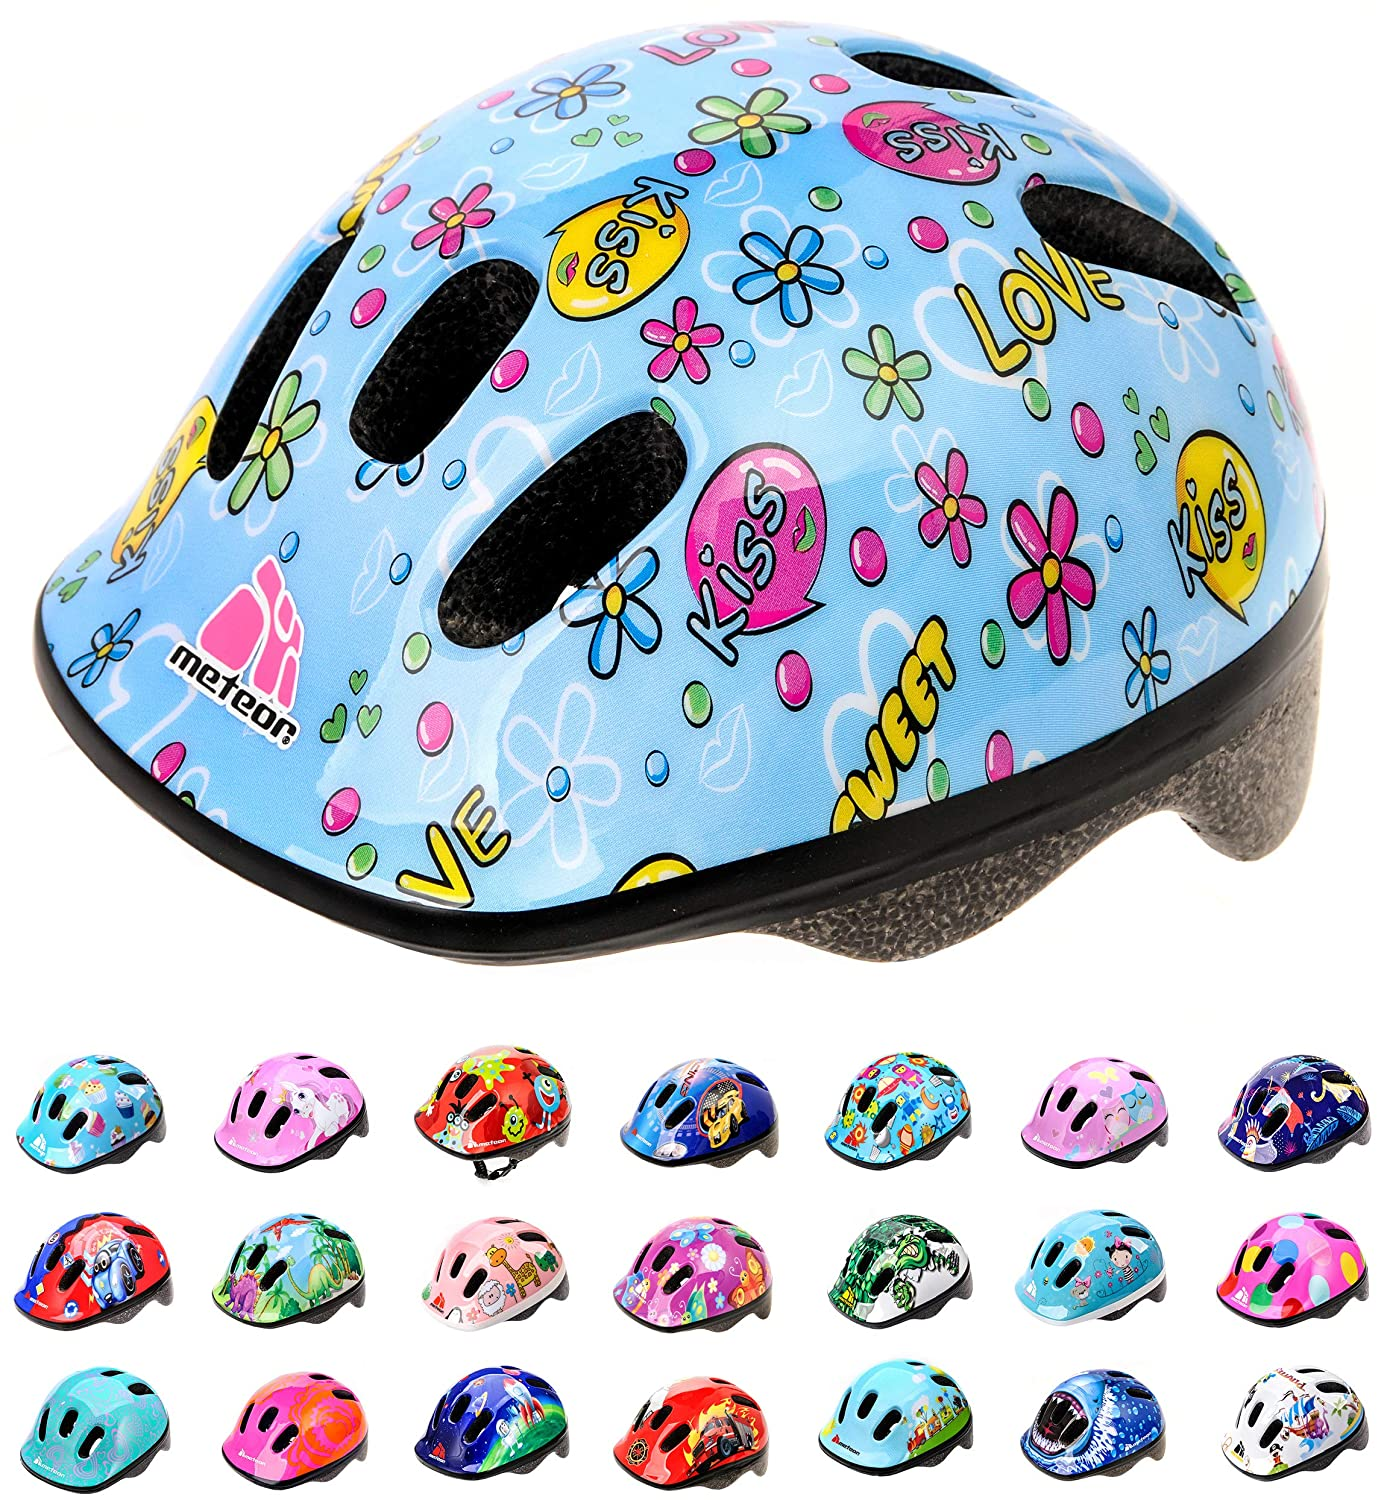 Meteor cycling helmet BMX bike cycling; for hoverboard MV6-2 kids and youth helmets: Cycling helmet for cyclists Designed for the safety of the youngest users: The helmet has an infinitely adjustable head strap. inline skate scooter